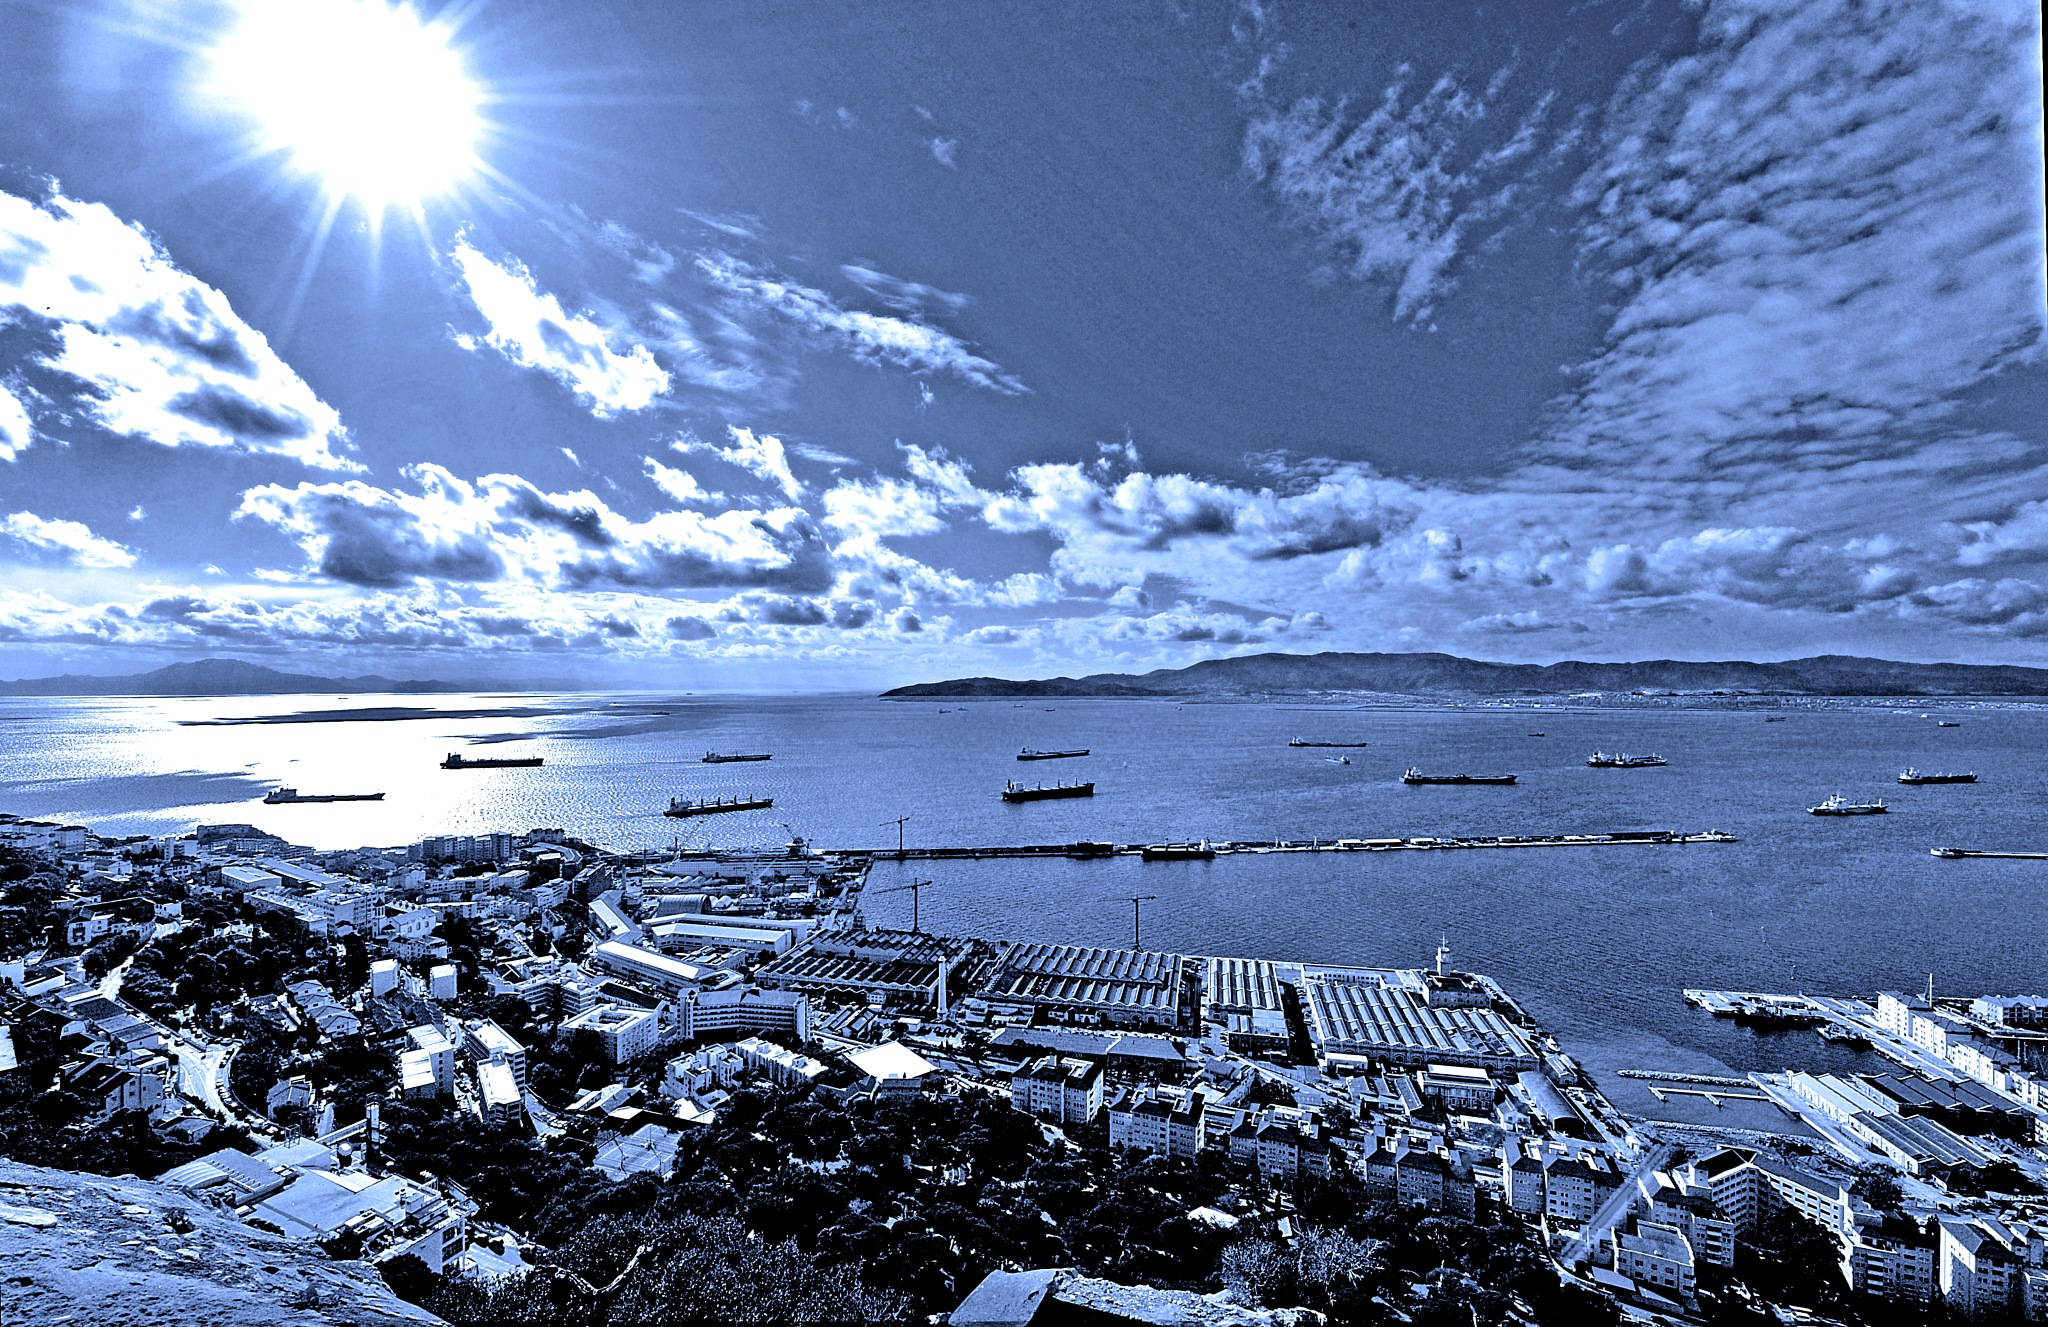 Straits of Gib by PeterMChambers